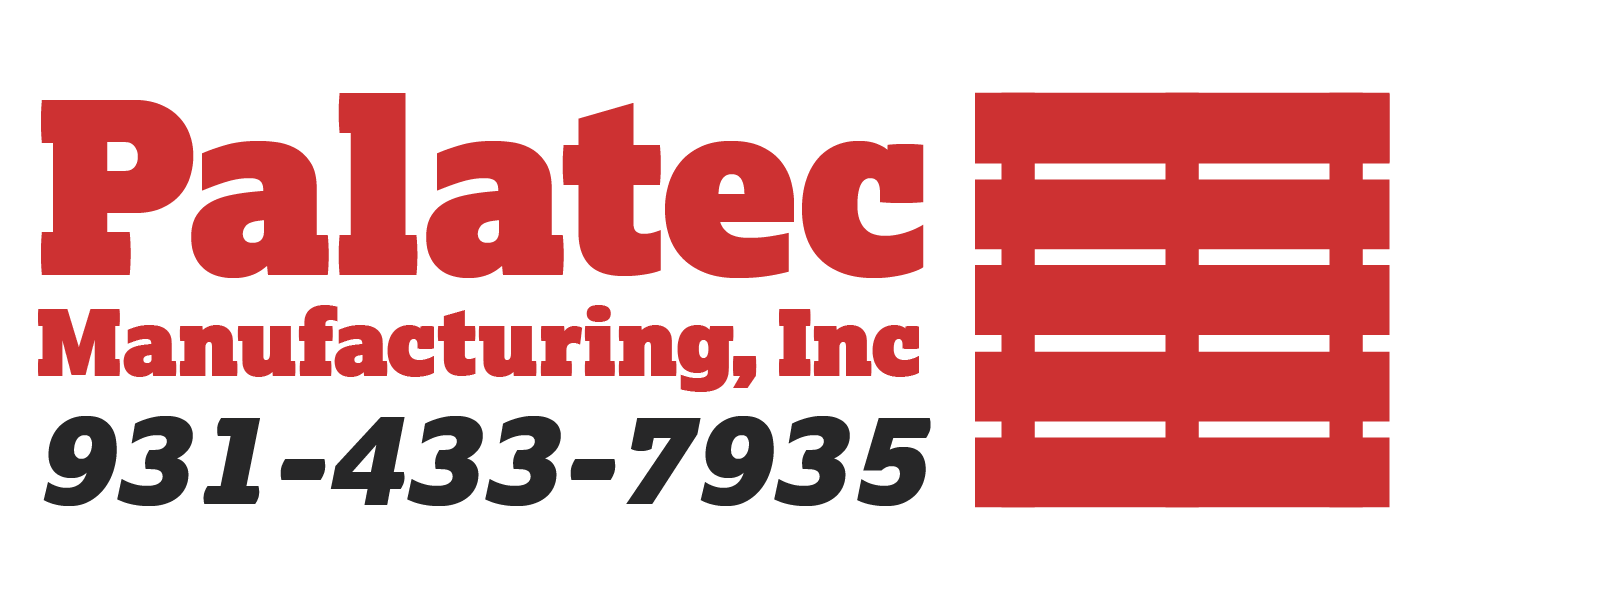 Palatec Manufacturing Inc